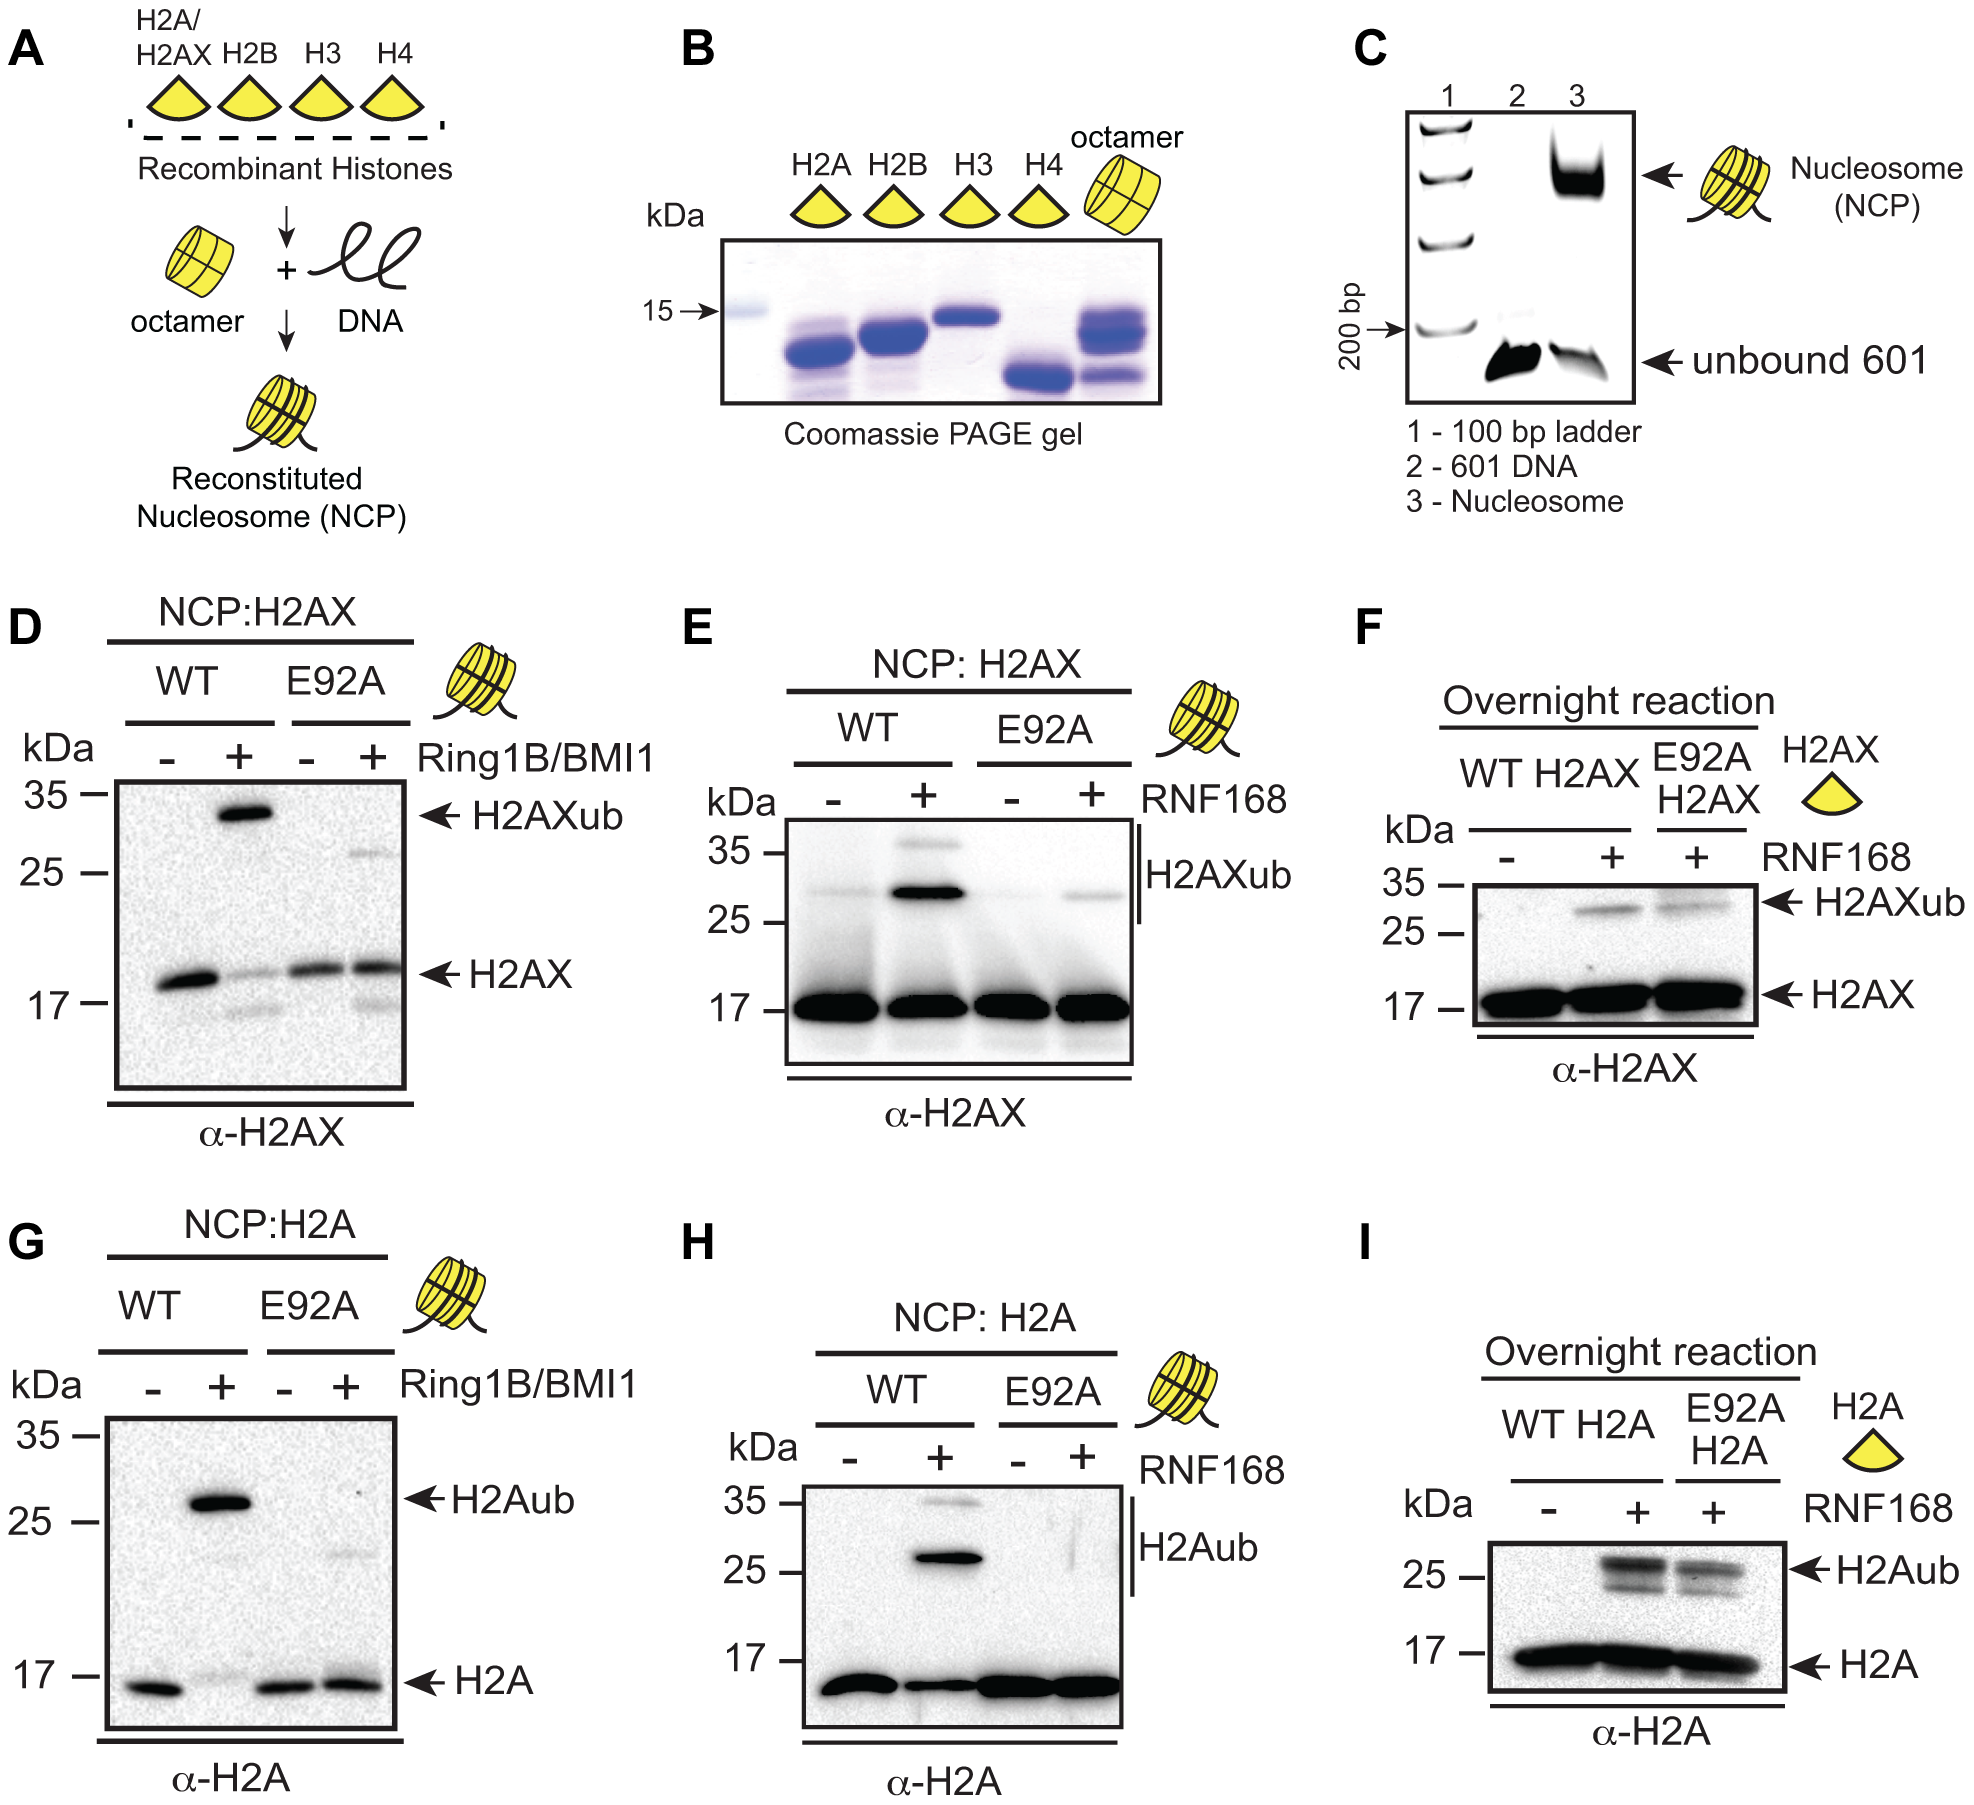 RING1B/BMI1- and RNF168-dependent ubiquitination of H2AX/H2A requires the nucleosome acidic patch <i>in vitro</i>.